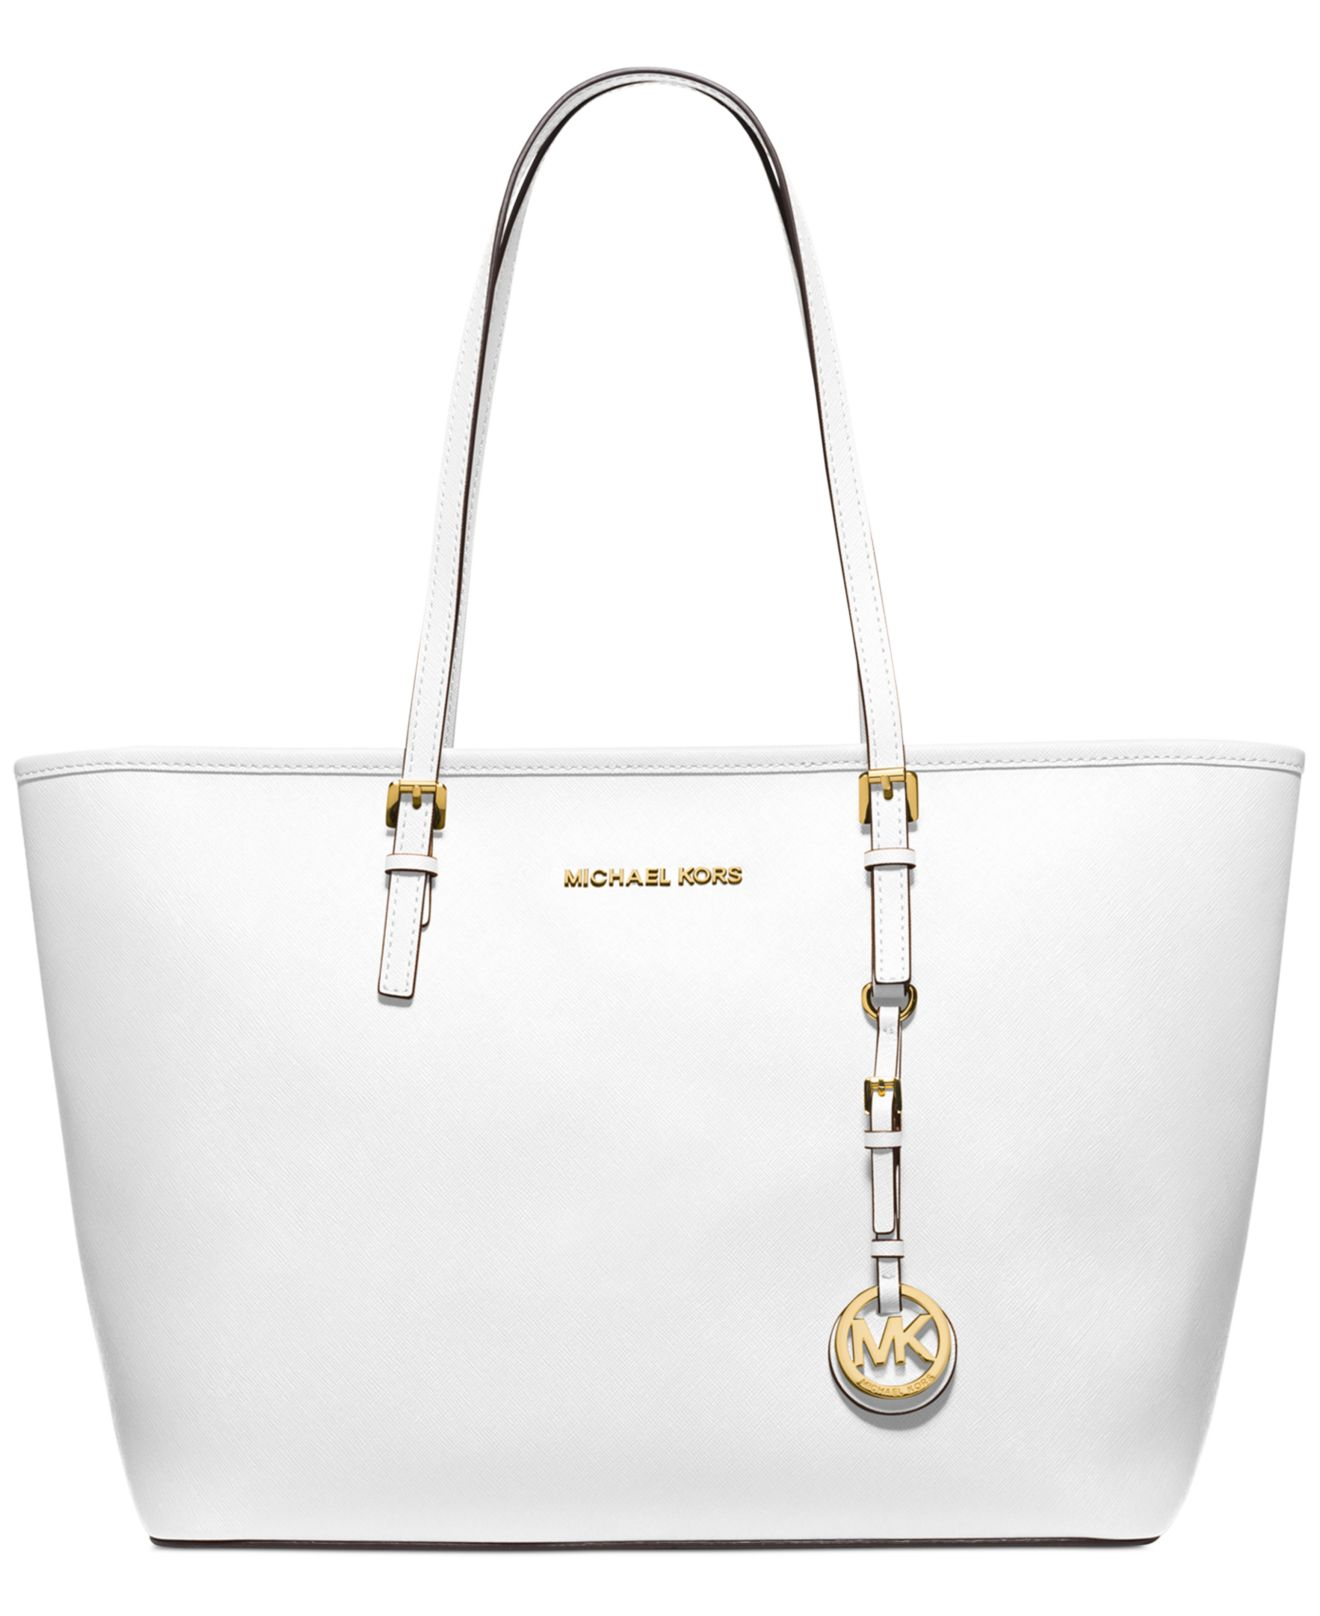 9106dceca284 ... purchase lyst michael kors michael jet set travel top zip tote in white  221b5 83712